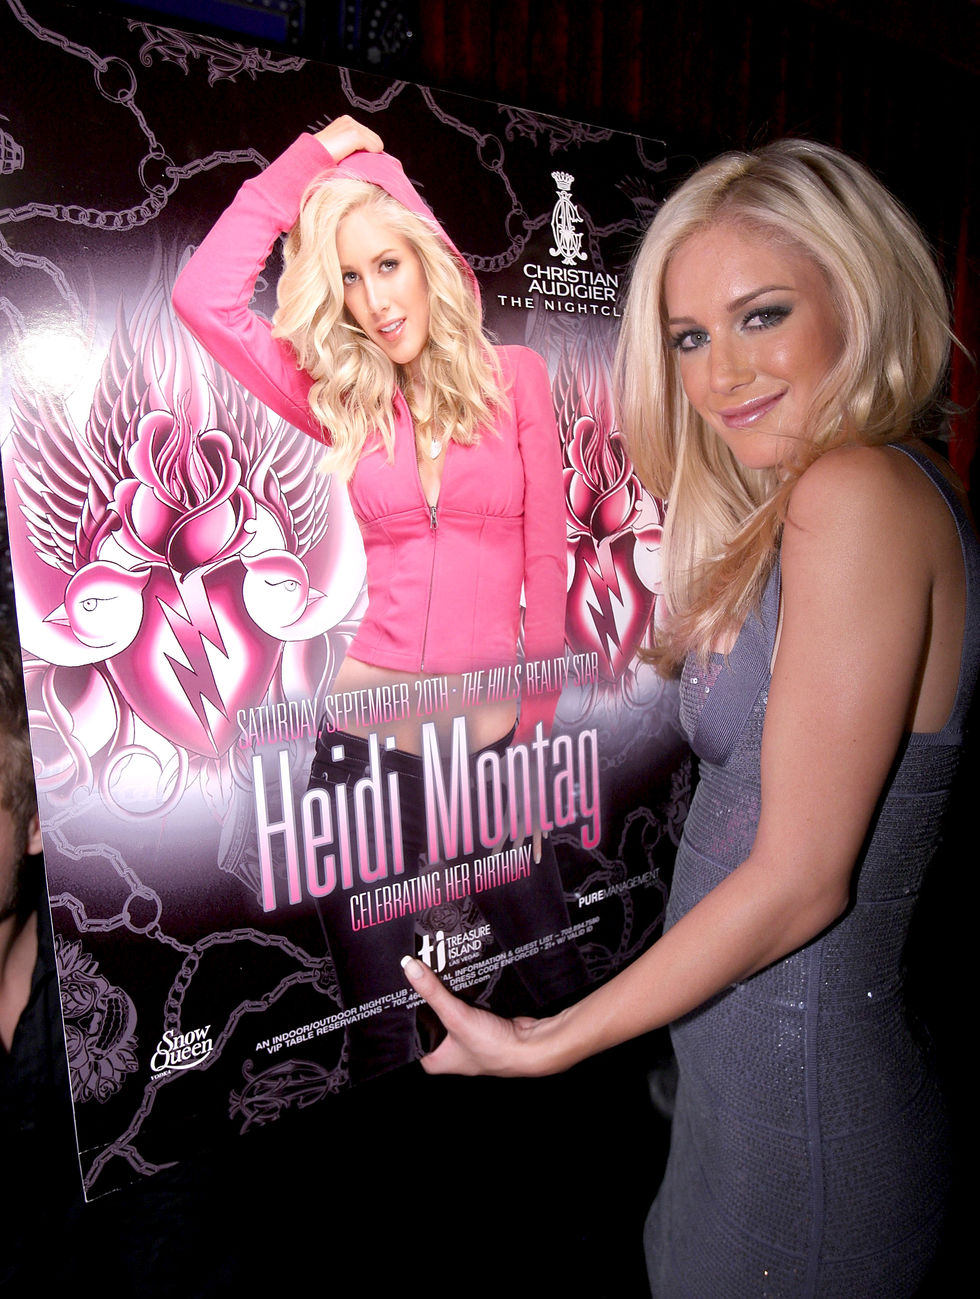 heidi-montag-birthday-party-at-christian-audigier-nightclub-in-las-vegas-01